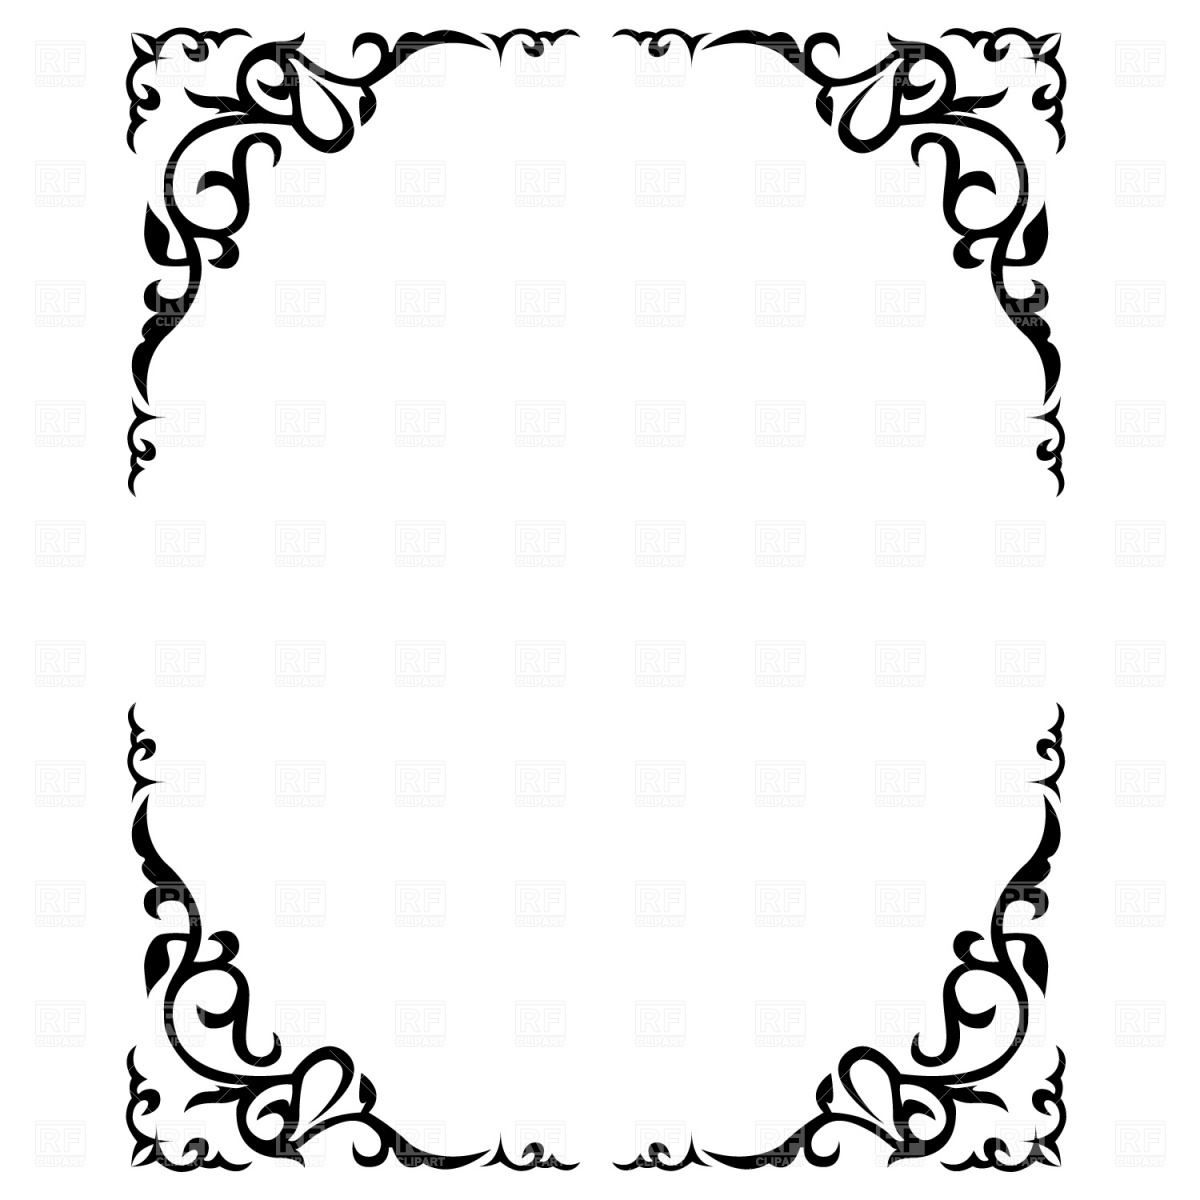 1200x1200 Ornate Floral Frame Vector Image Vector Artwork Of Borders And